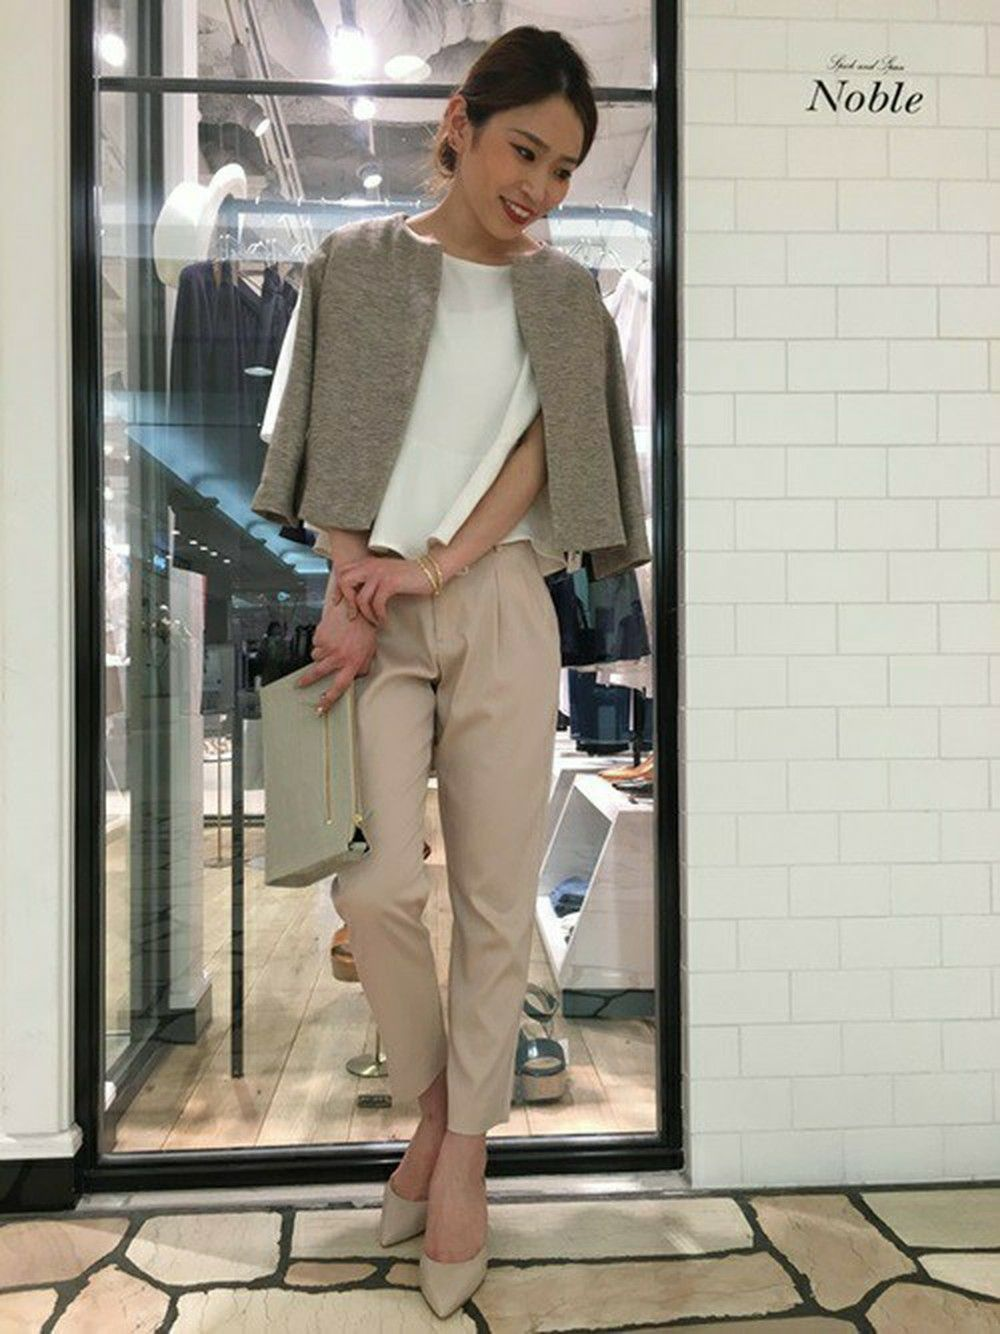 2ad90a974e3546 rika(Spick and Span Noble新宿ルミネ店)|Spick and Span Nobleのノー ...